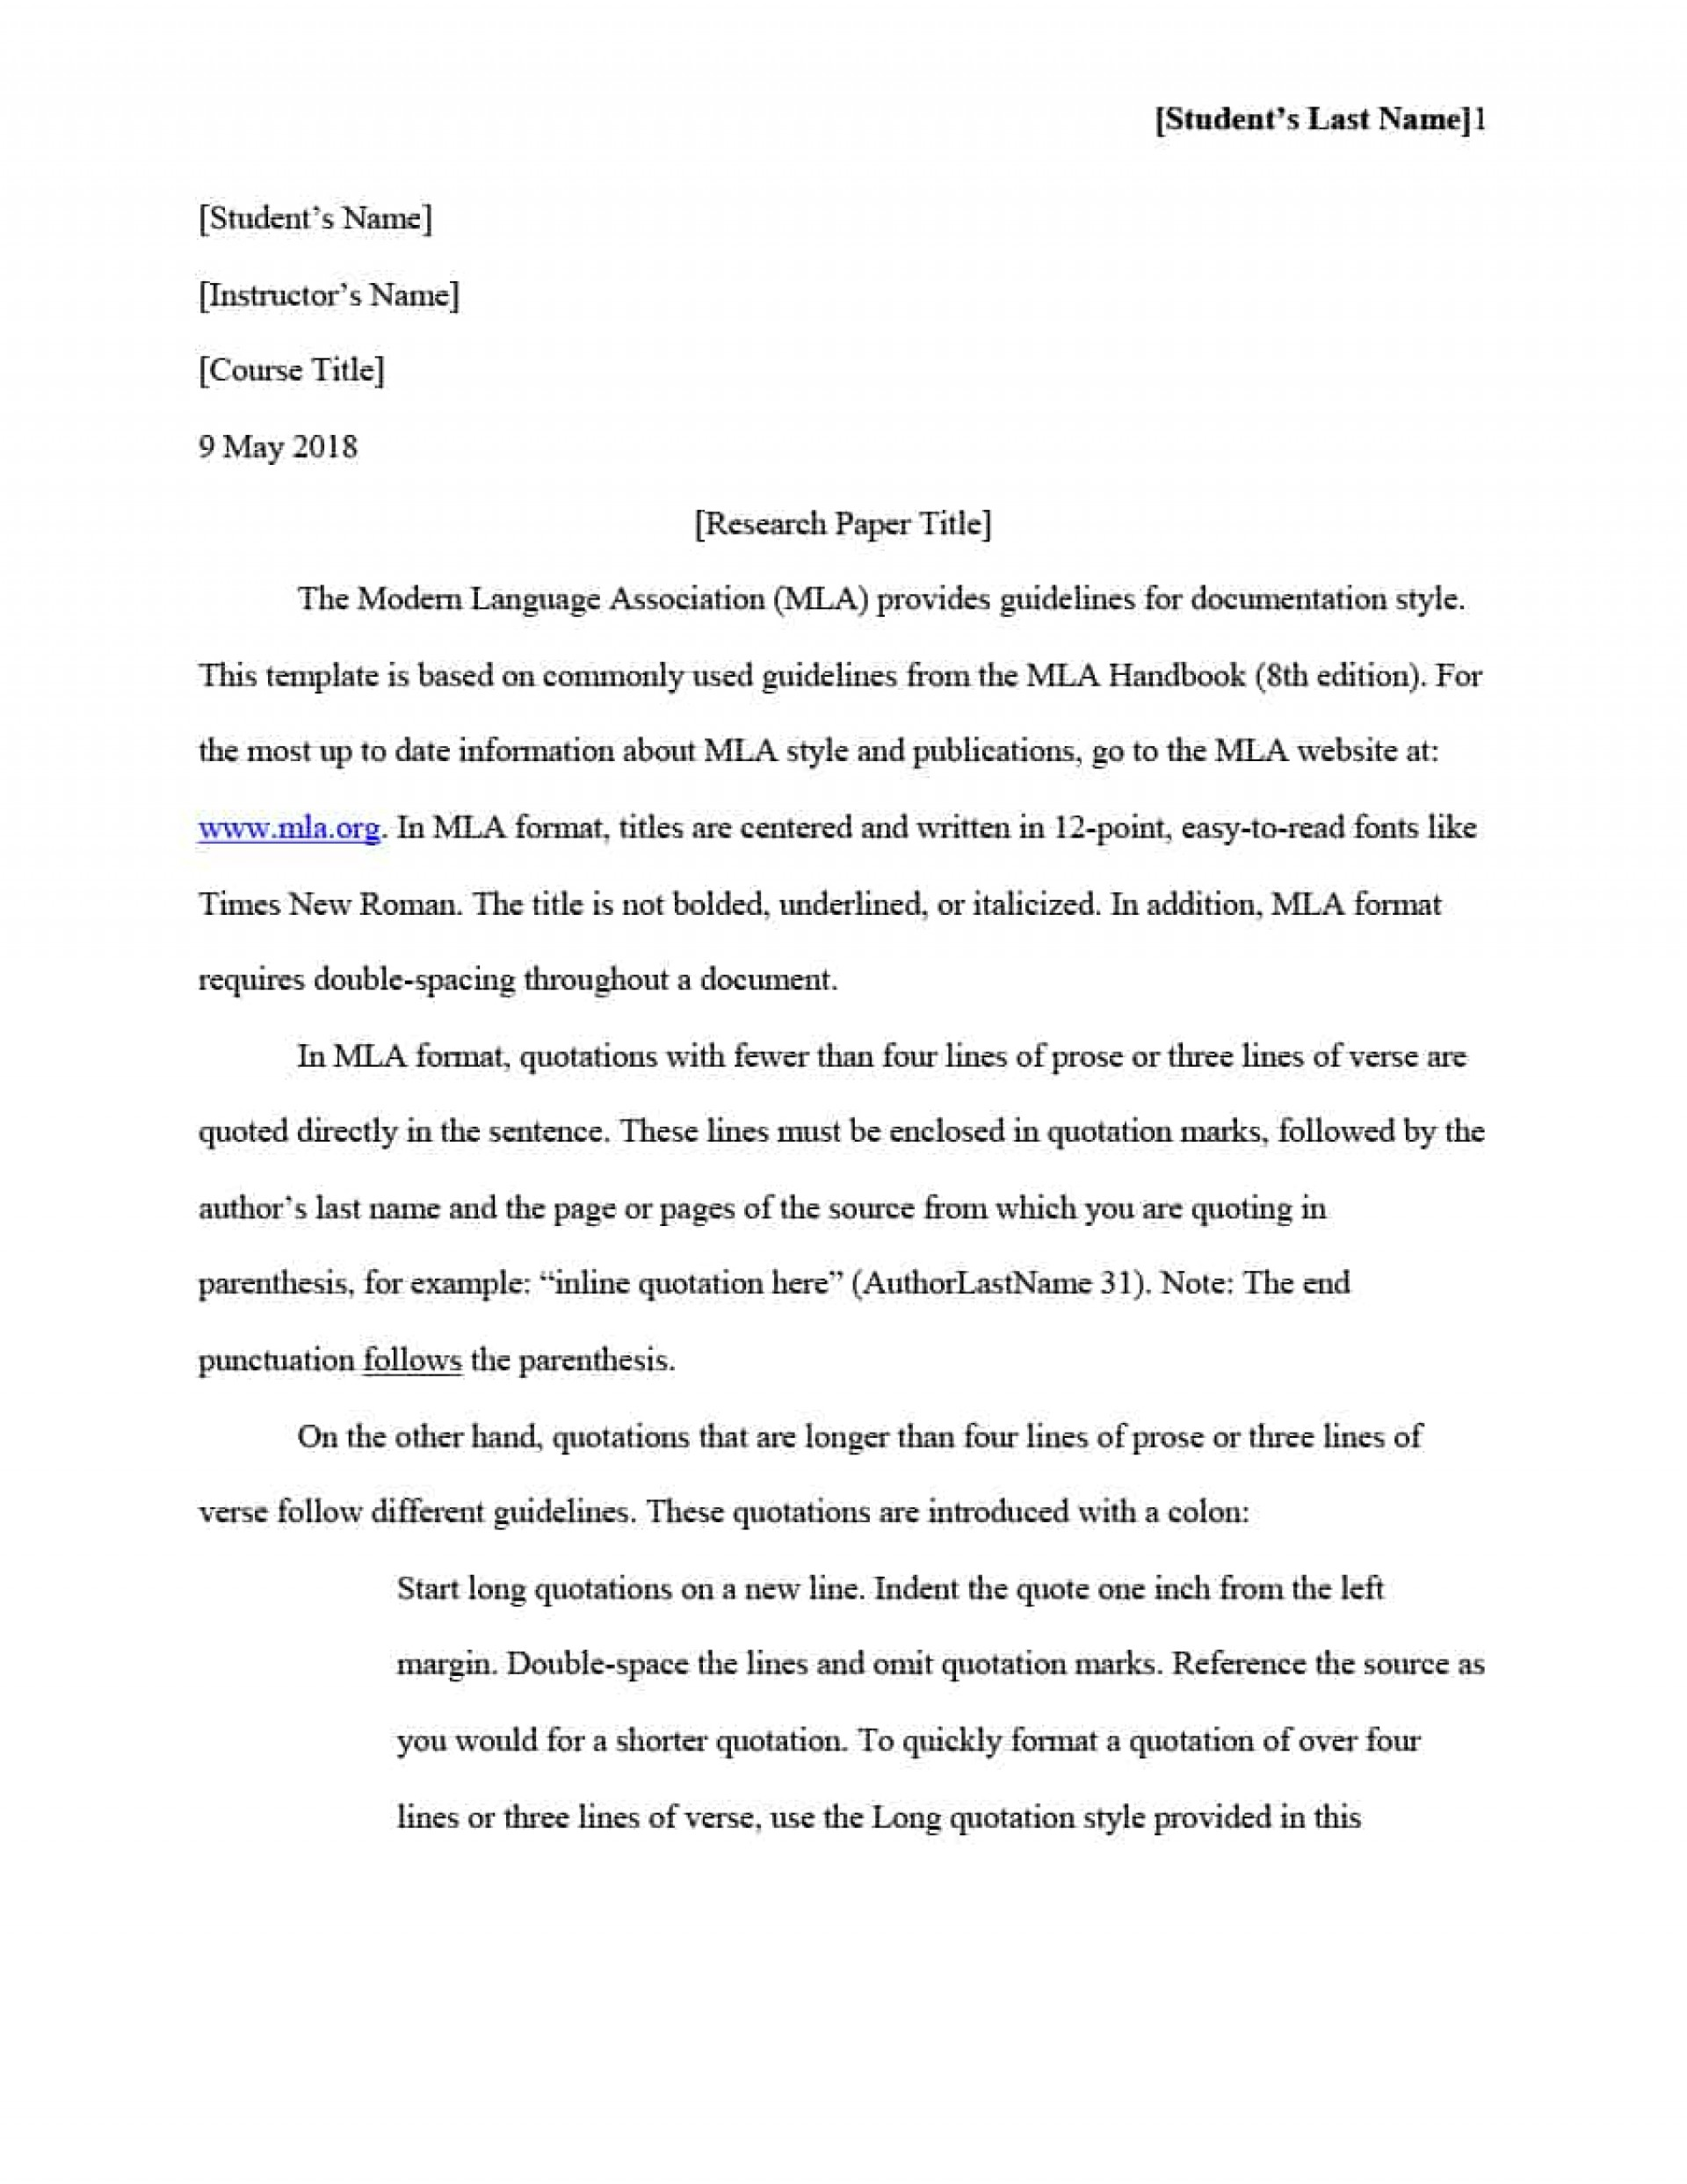 011 First Page Research Paper Mla Format Template Unique Style For The Of A Title 1920